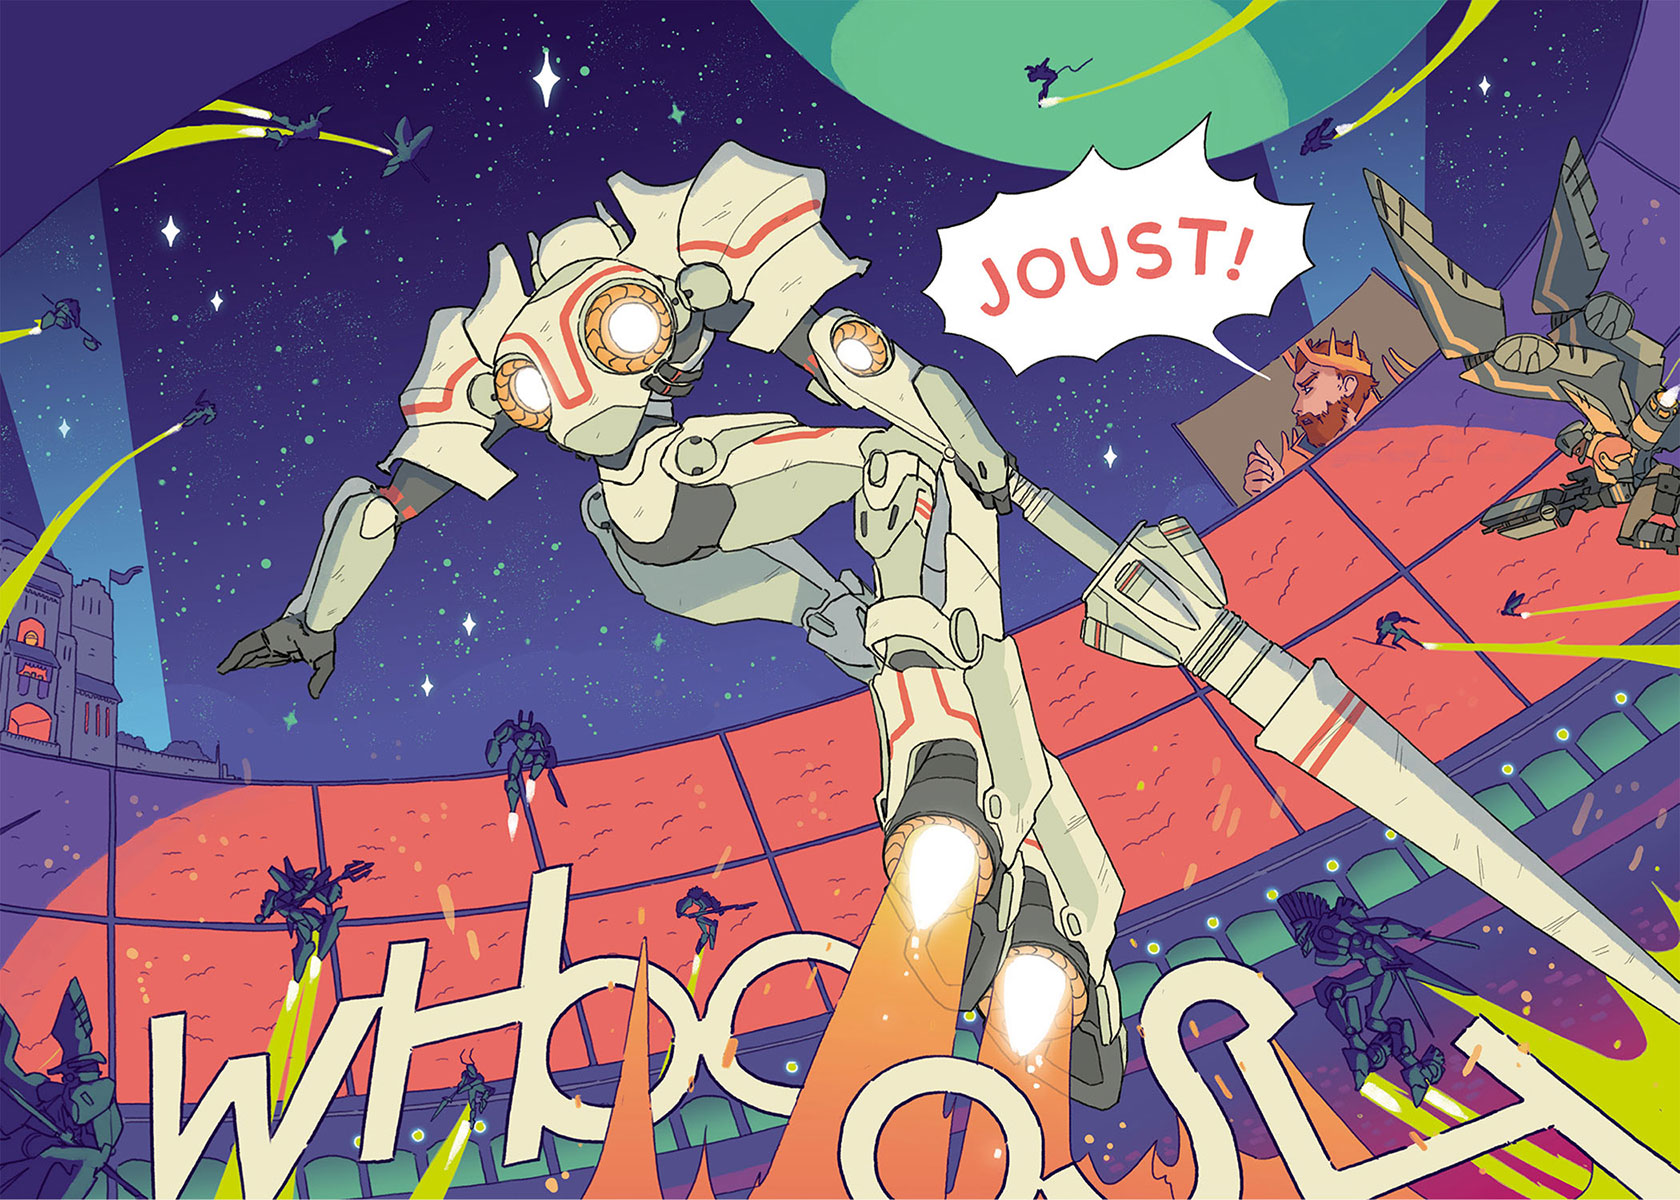 """This photograph shows an intergalactic joust in progress with a jouster in the foreground wearing predominantly white armor and sporting several jet boosters and a large lance surrounded by other jousters. The king is shown on screen in the background shouting """"JOUST"""" to begin the games."""